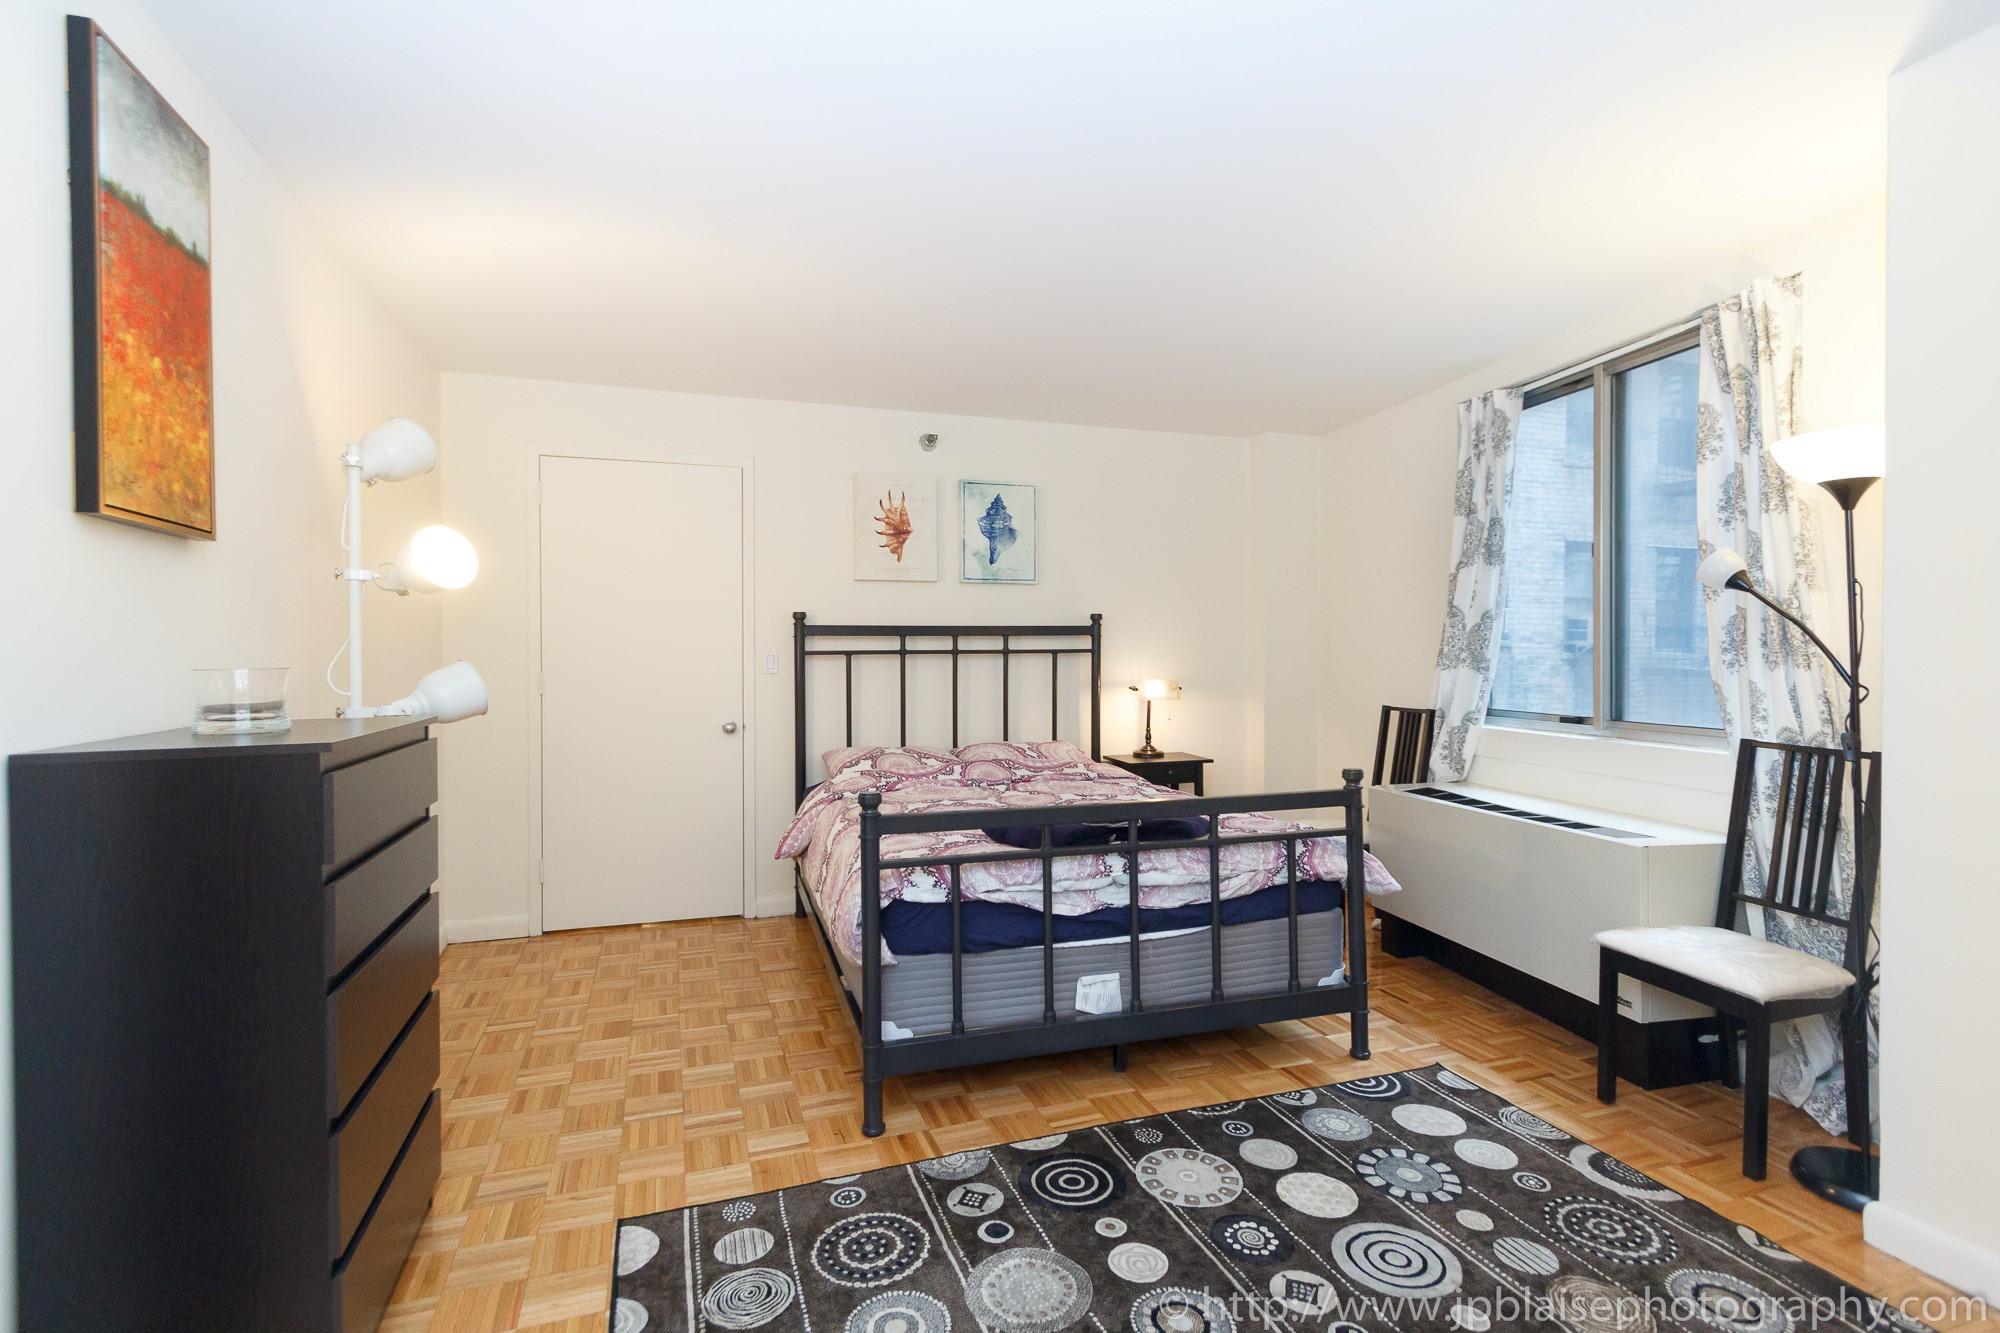 Apartment-photographer-New-York-City-Two-Bedroom-Midtown-East-NYC-Bed-2